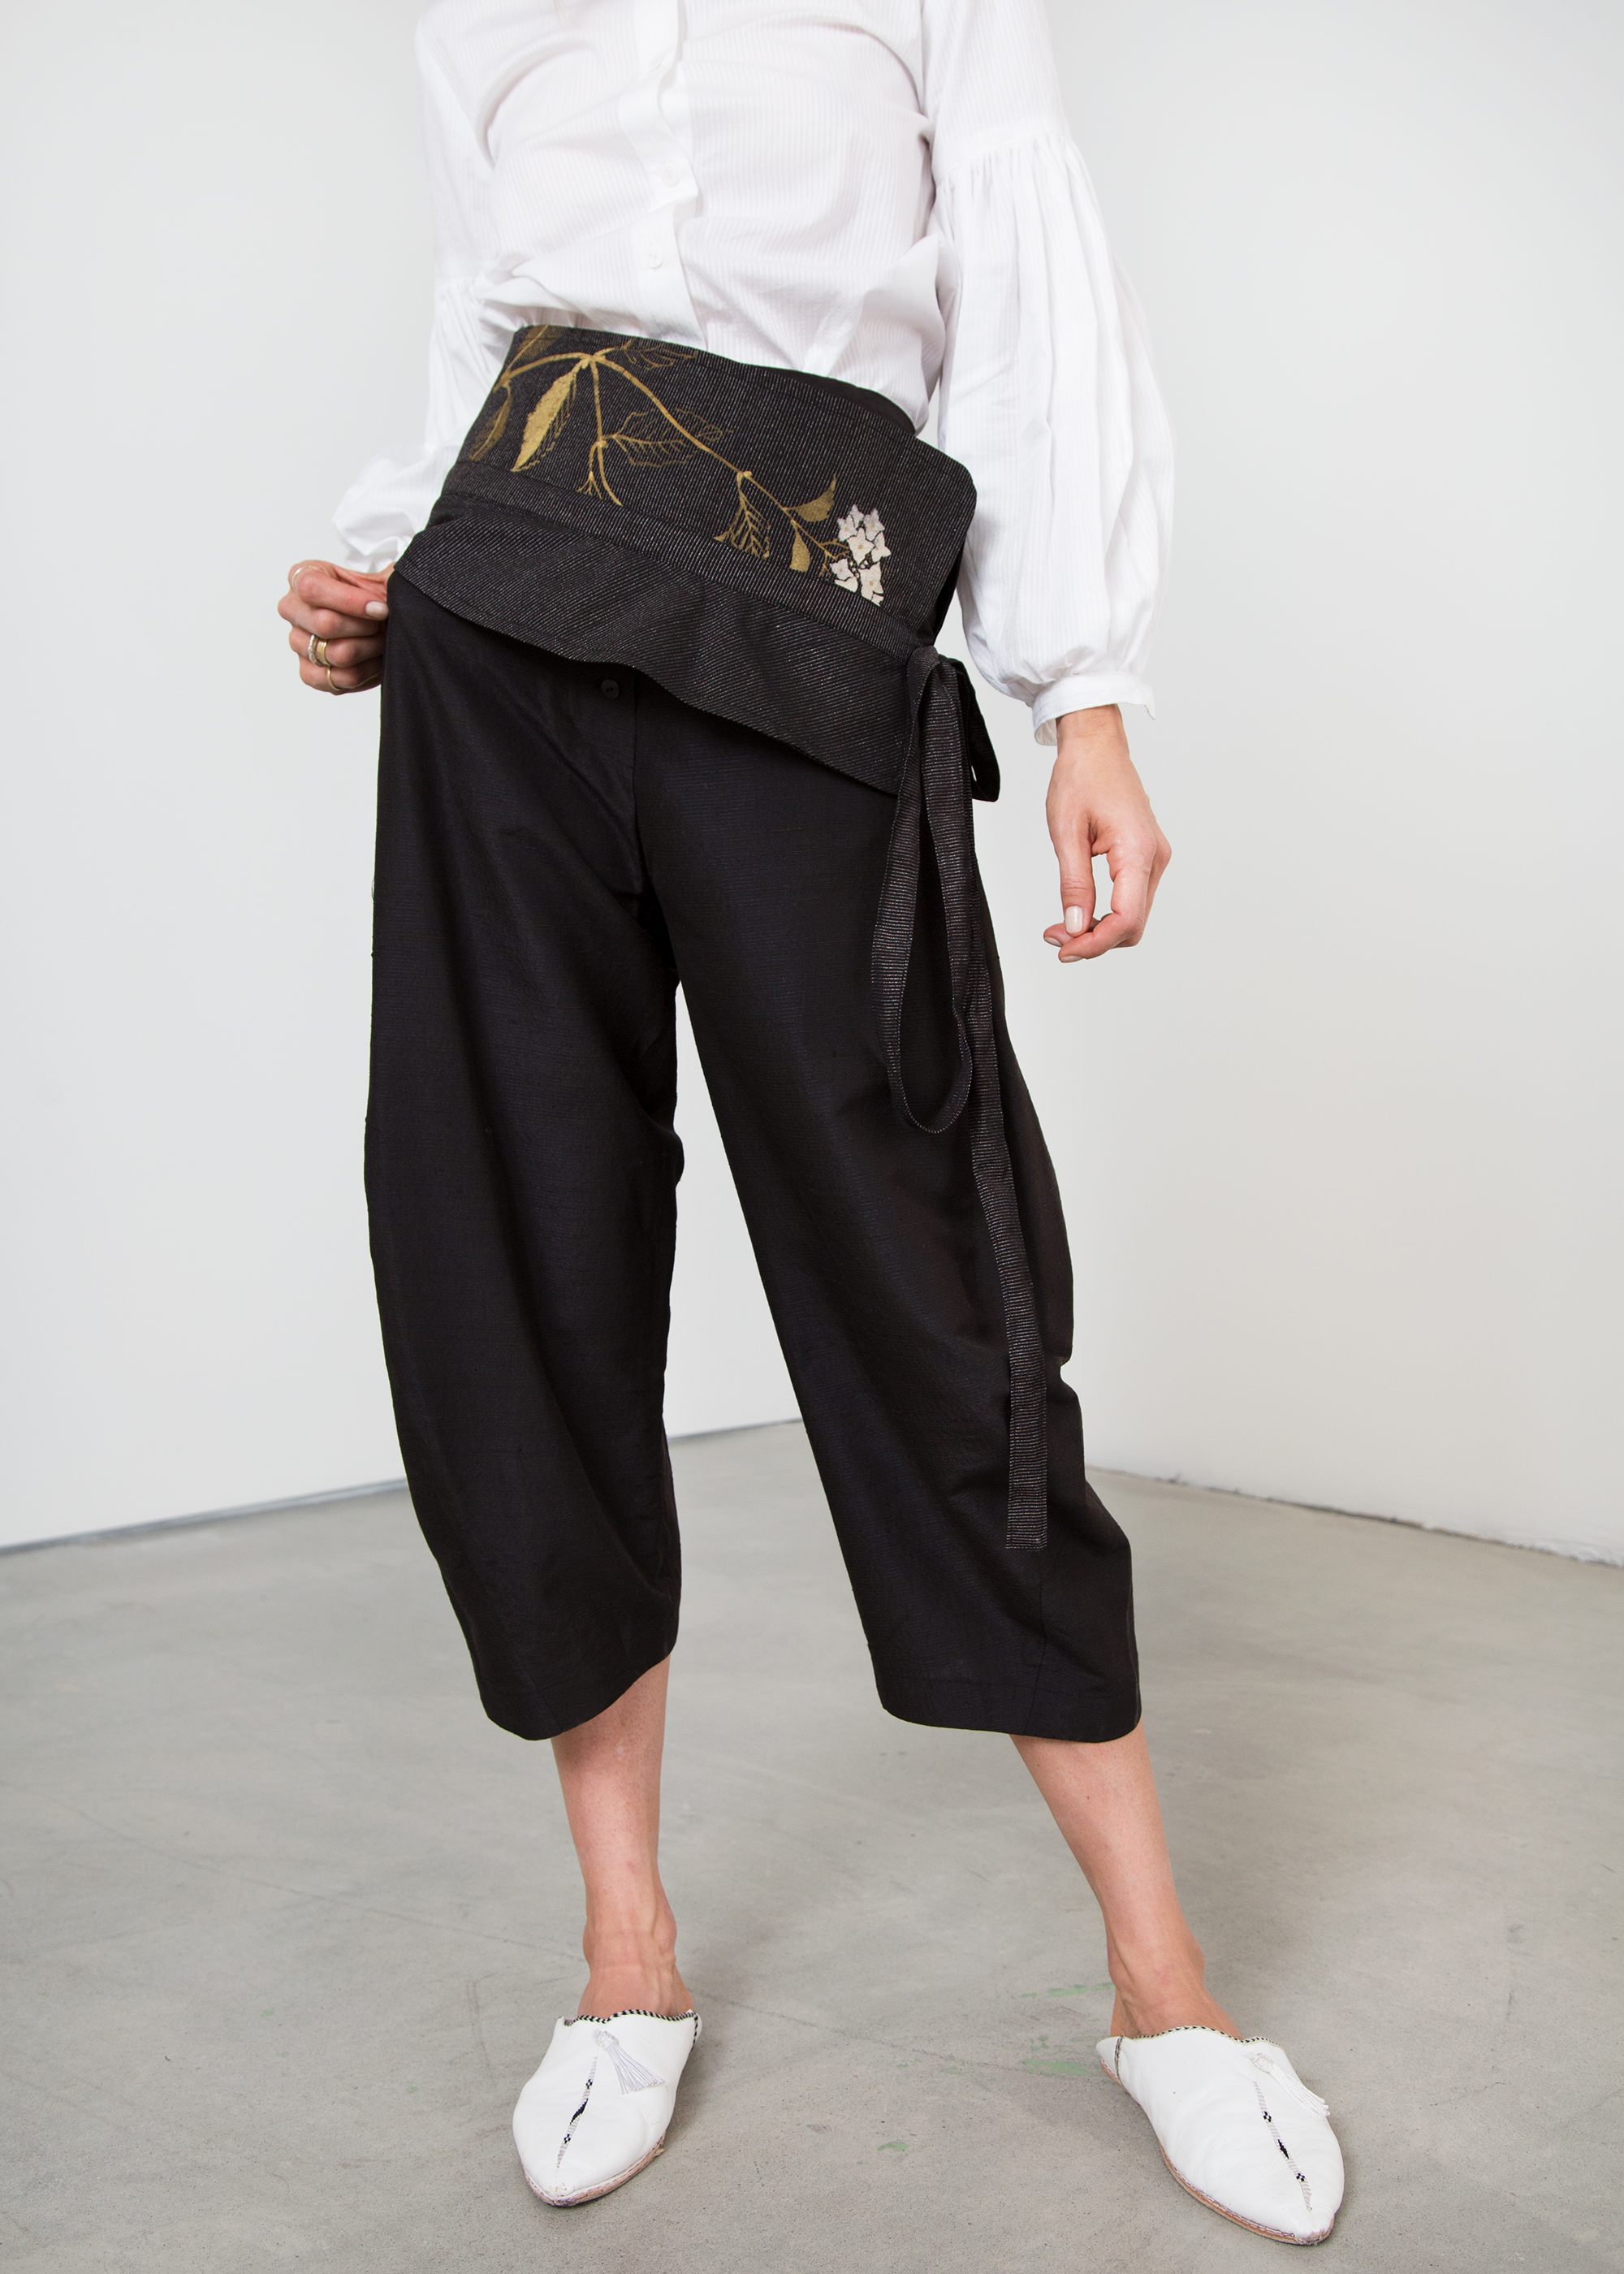 outfit7-amy-pants-5.jpg